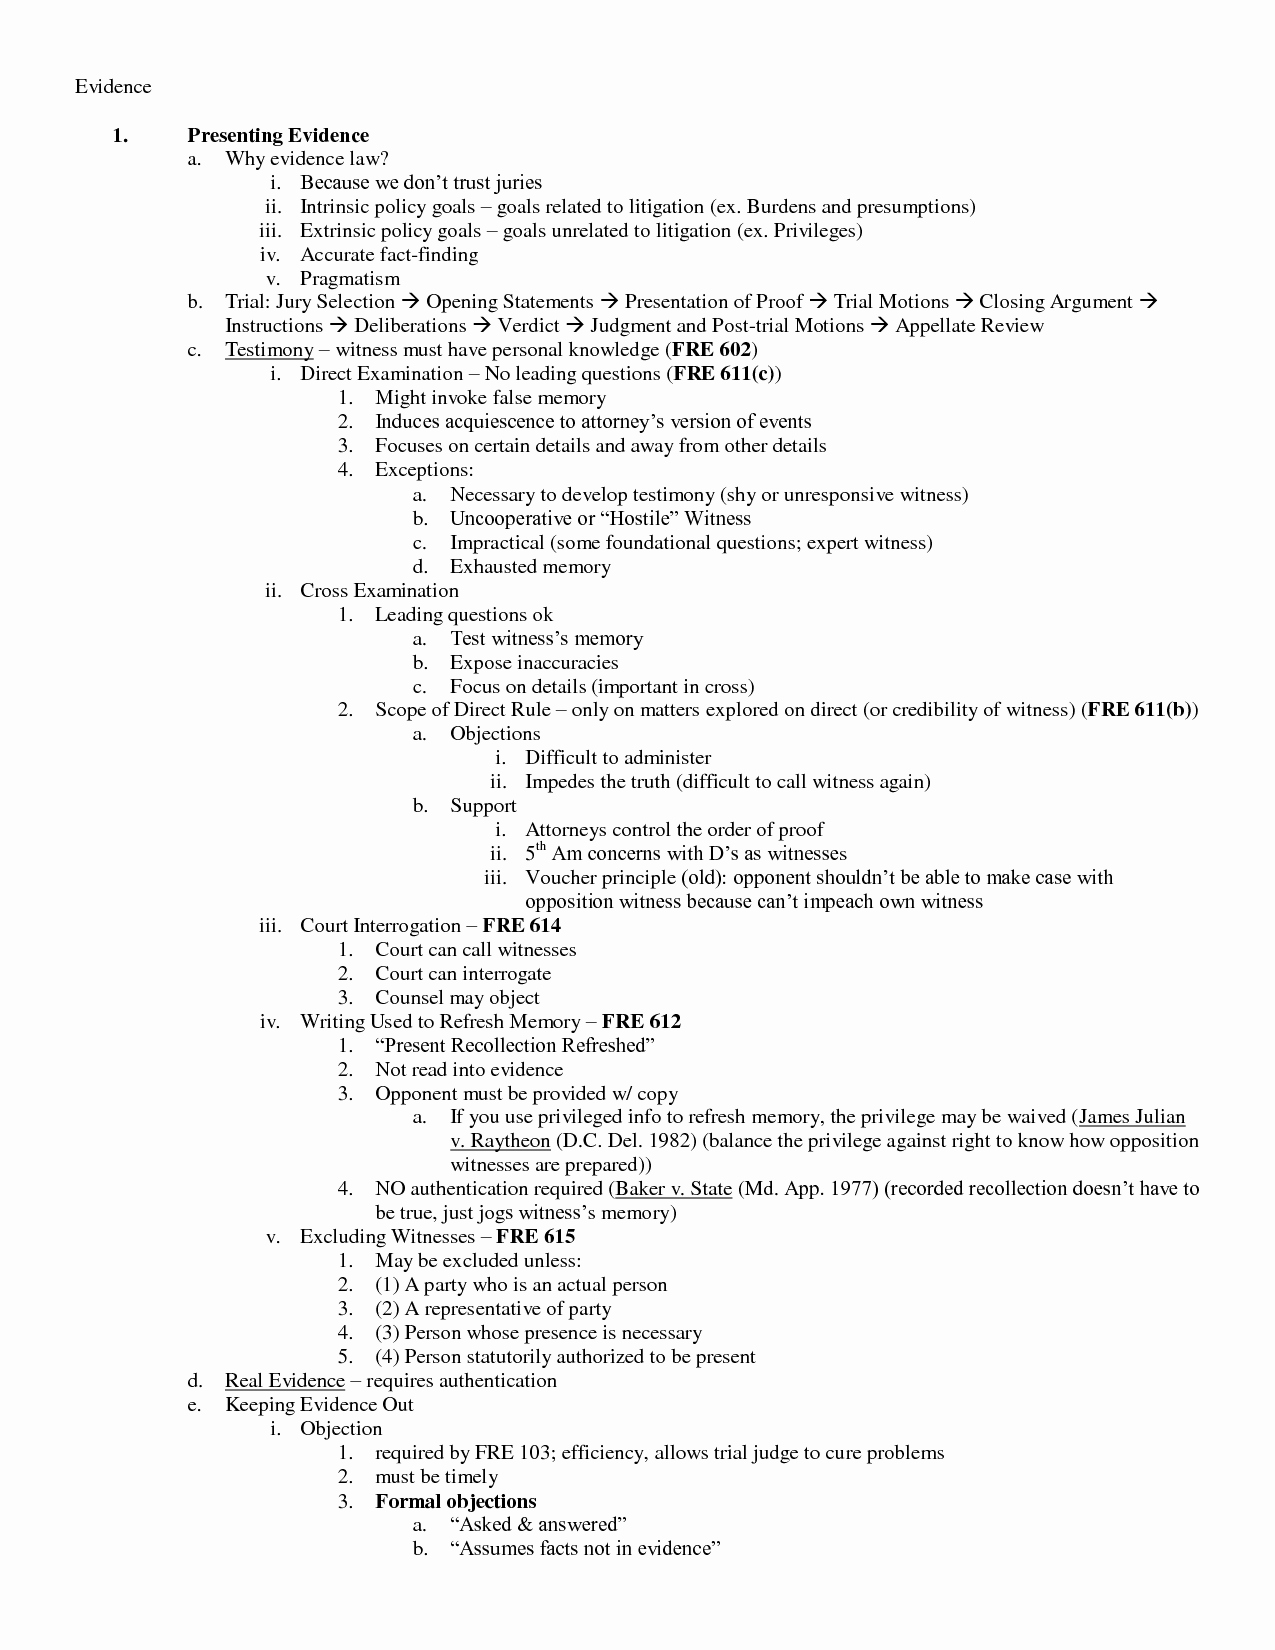 Mla format Outline for Speech Lovely Best S Of Persuasive Speech Outline Template Mla